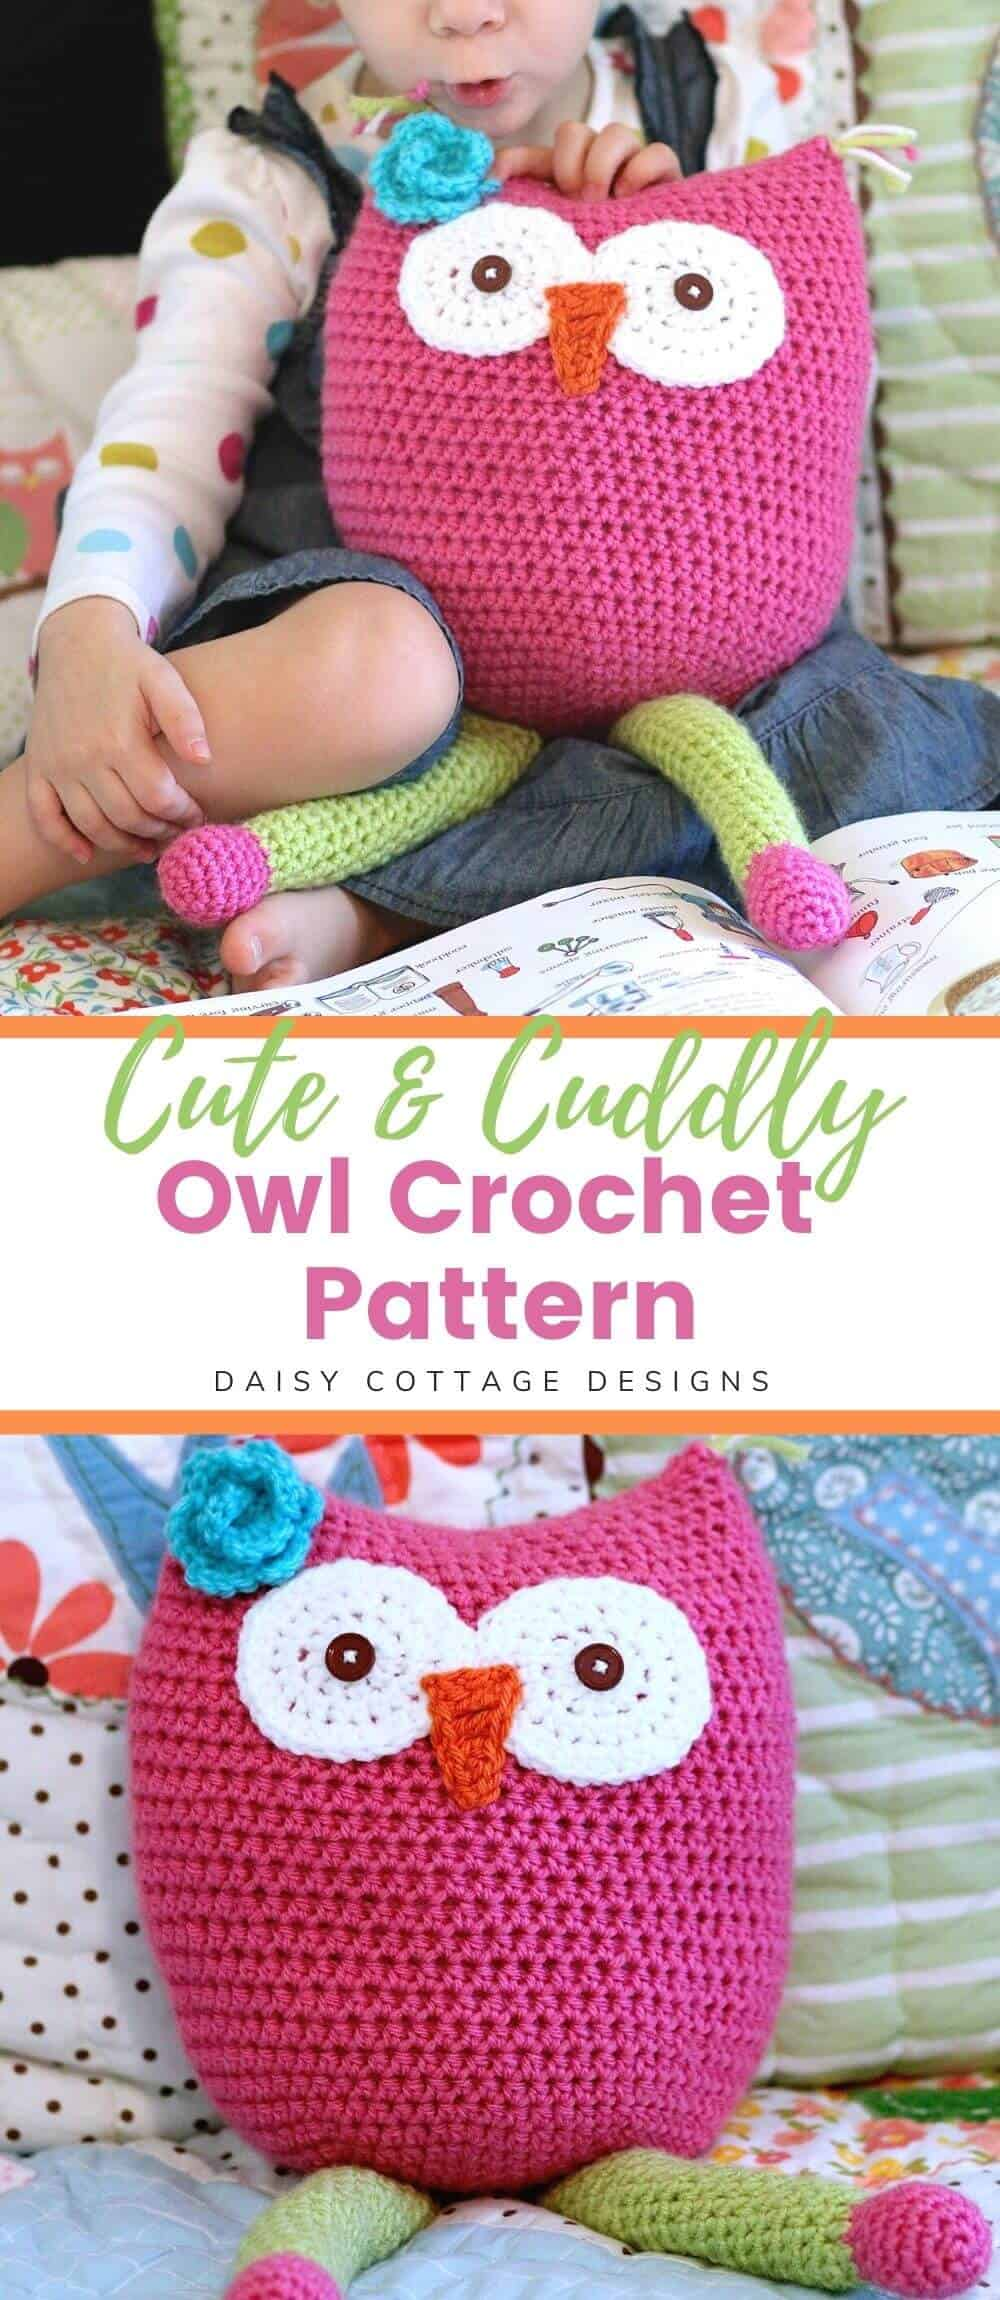 Use this owl toy crochet pattern to create a beautiful cuddle buddy. This quick and easy crochet pattern can be made in just a few hours.